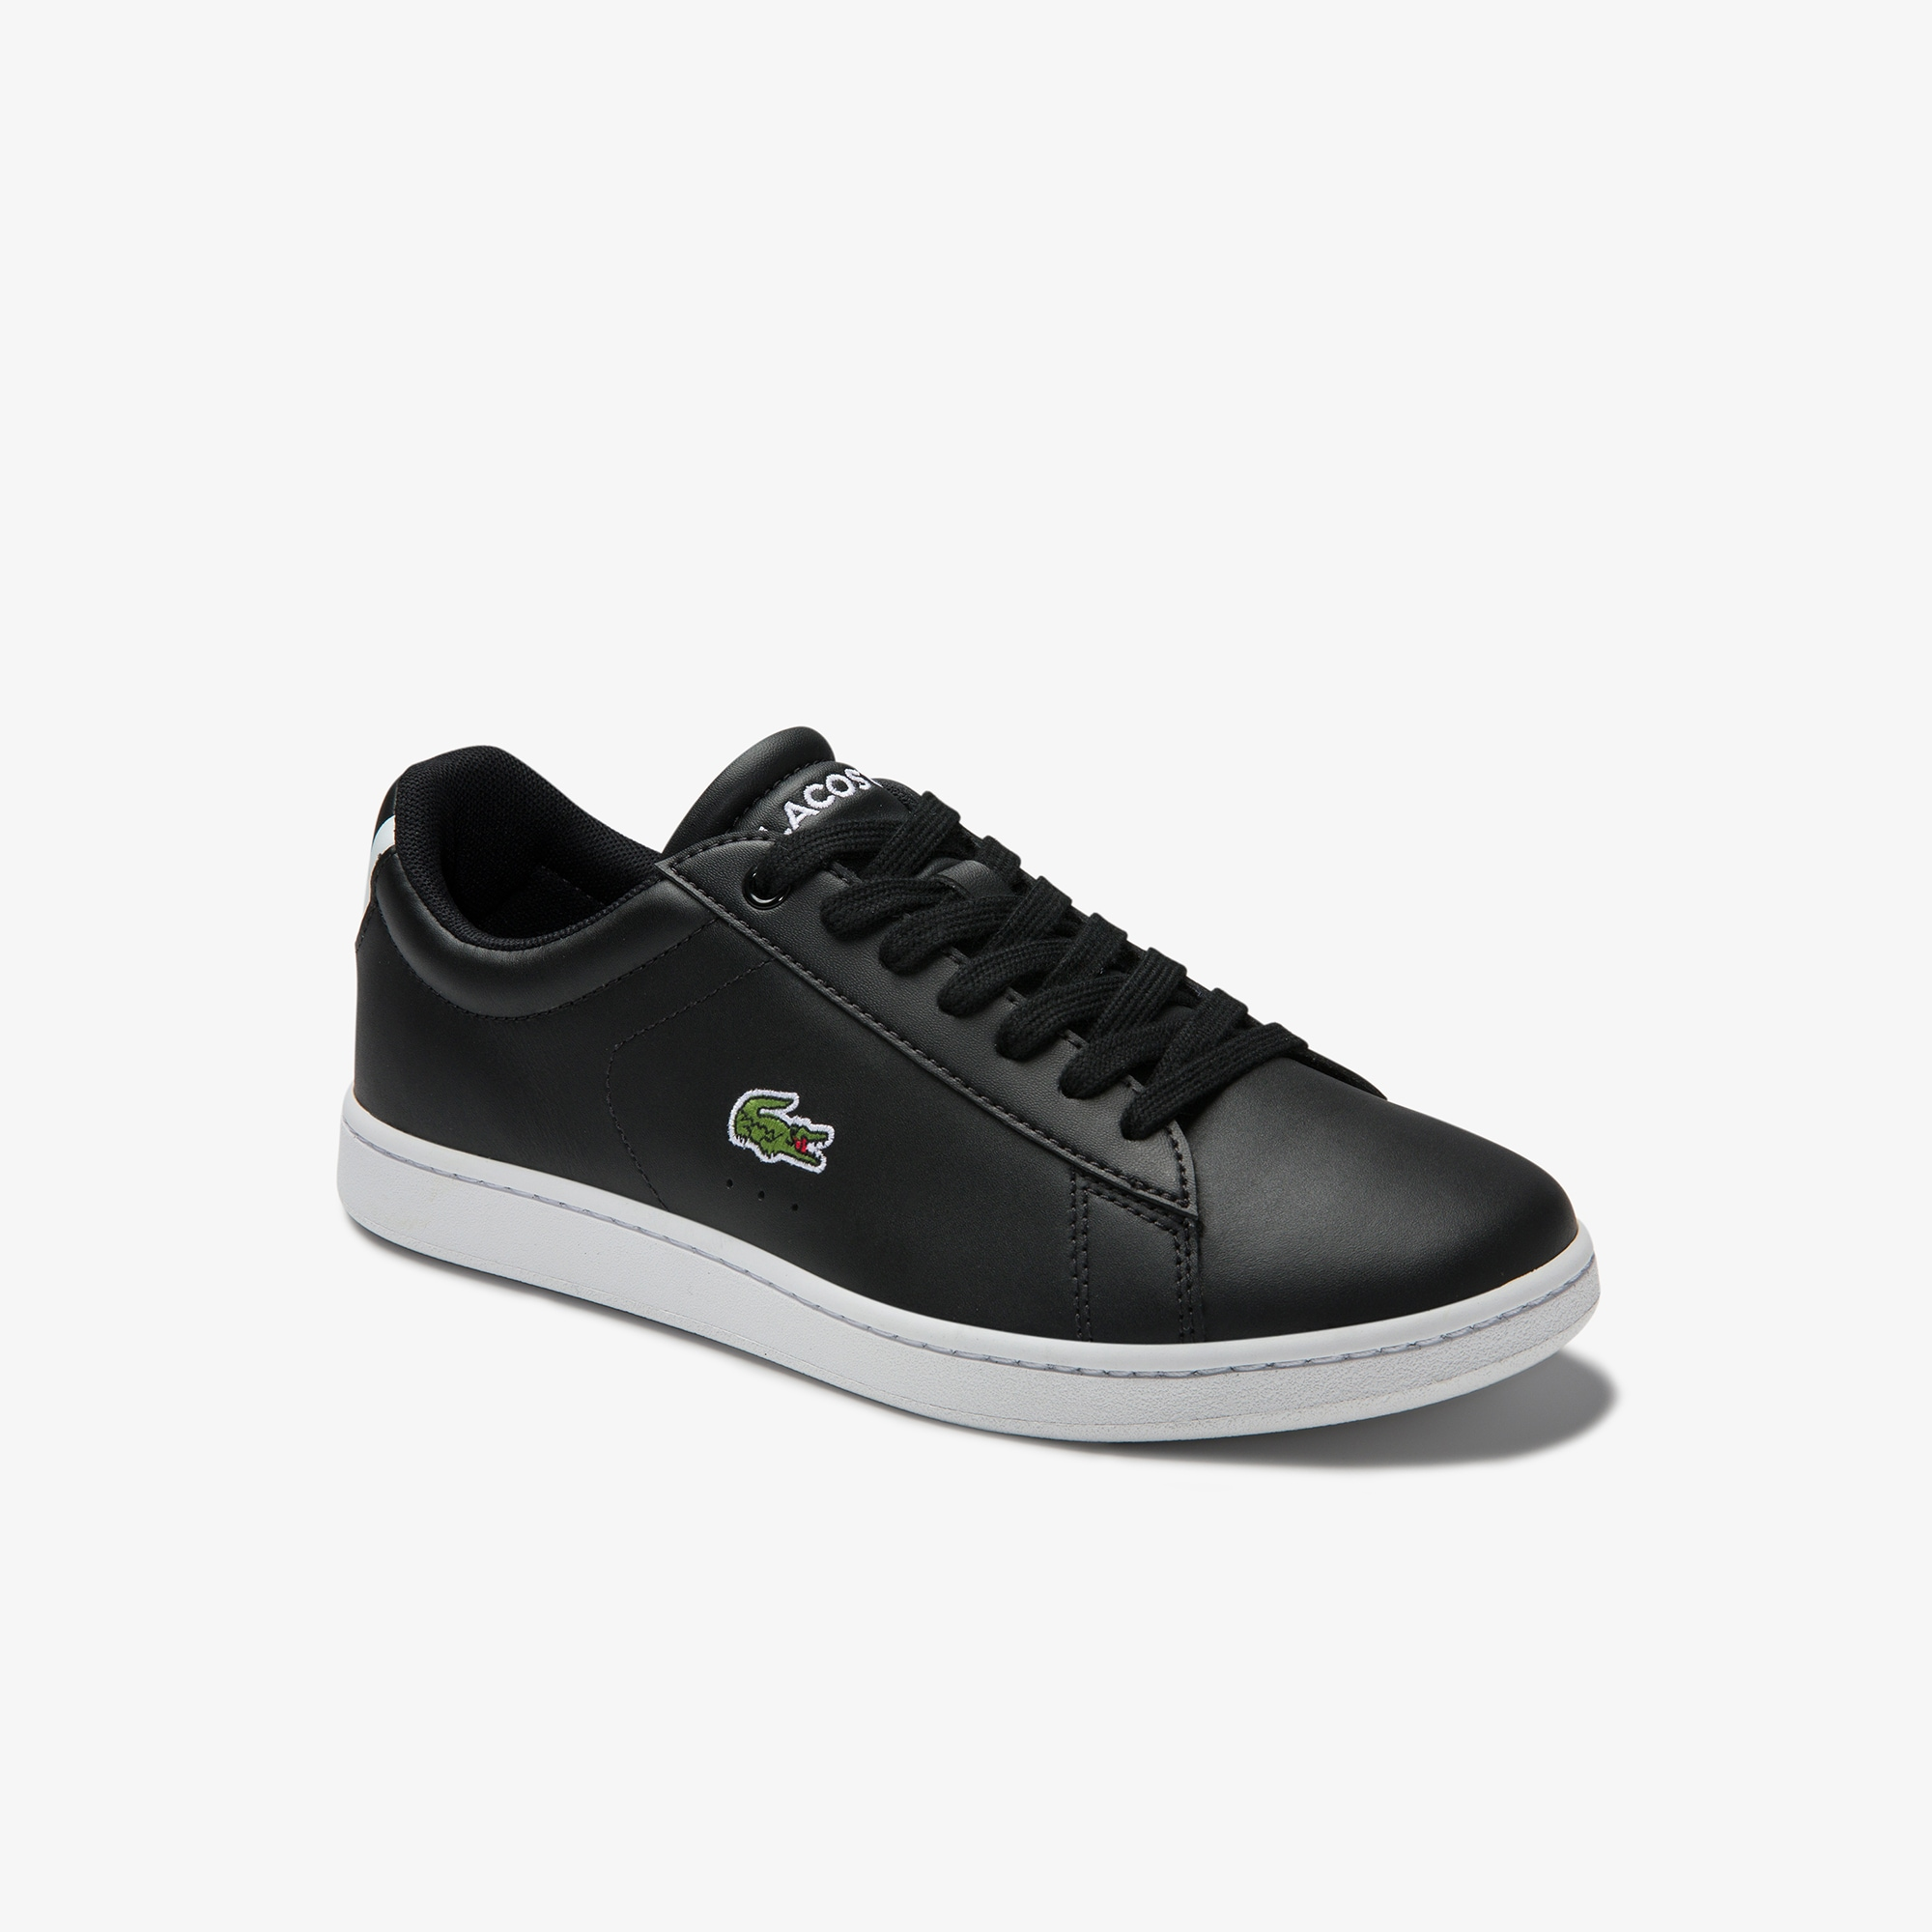 Women's Carnaby Evo BL Leather Trainers